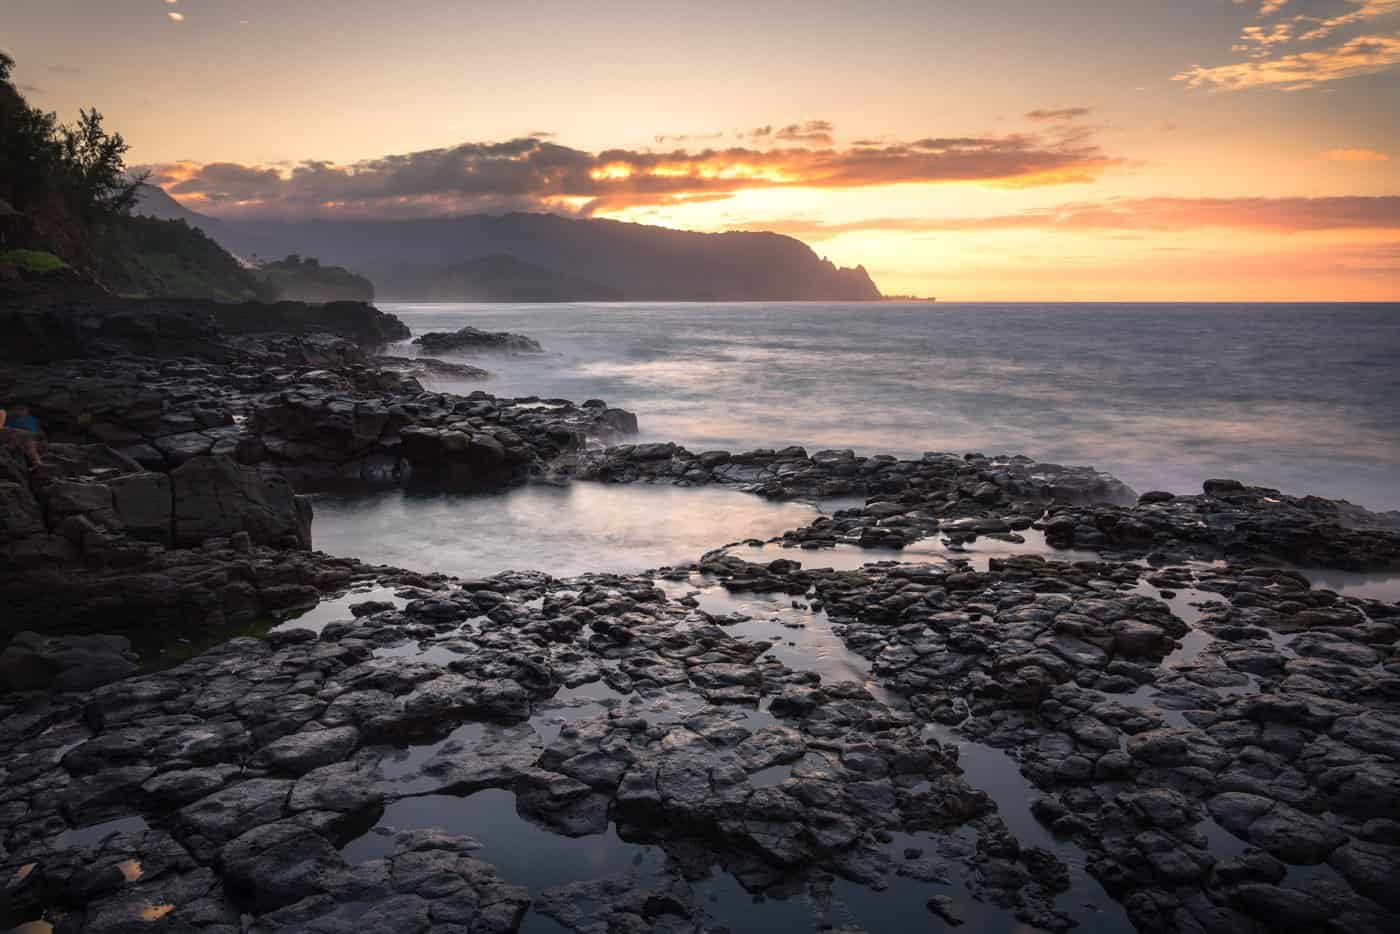 The lava-forged Queen's Bath is arguably the best place for photographing Kauai sunsets.